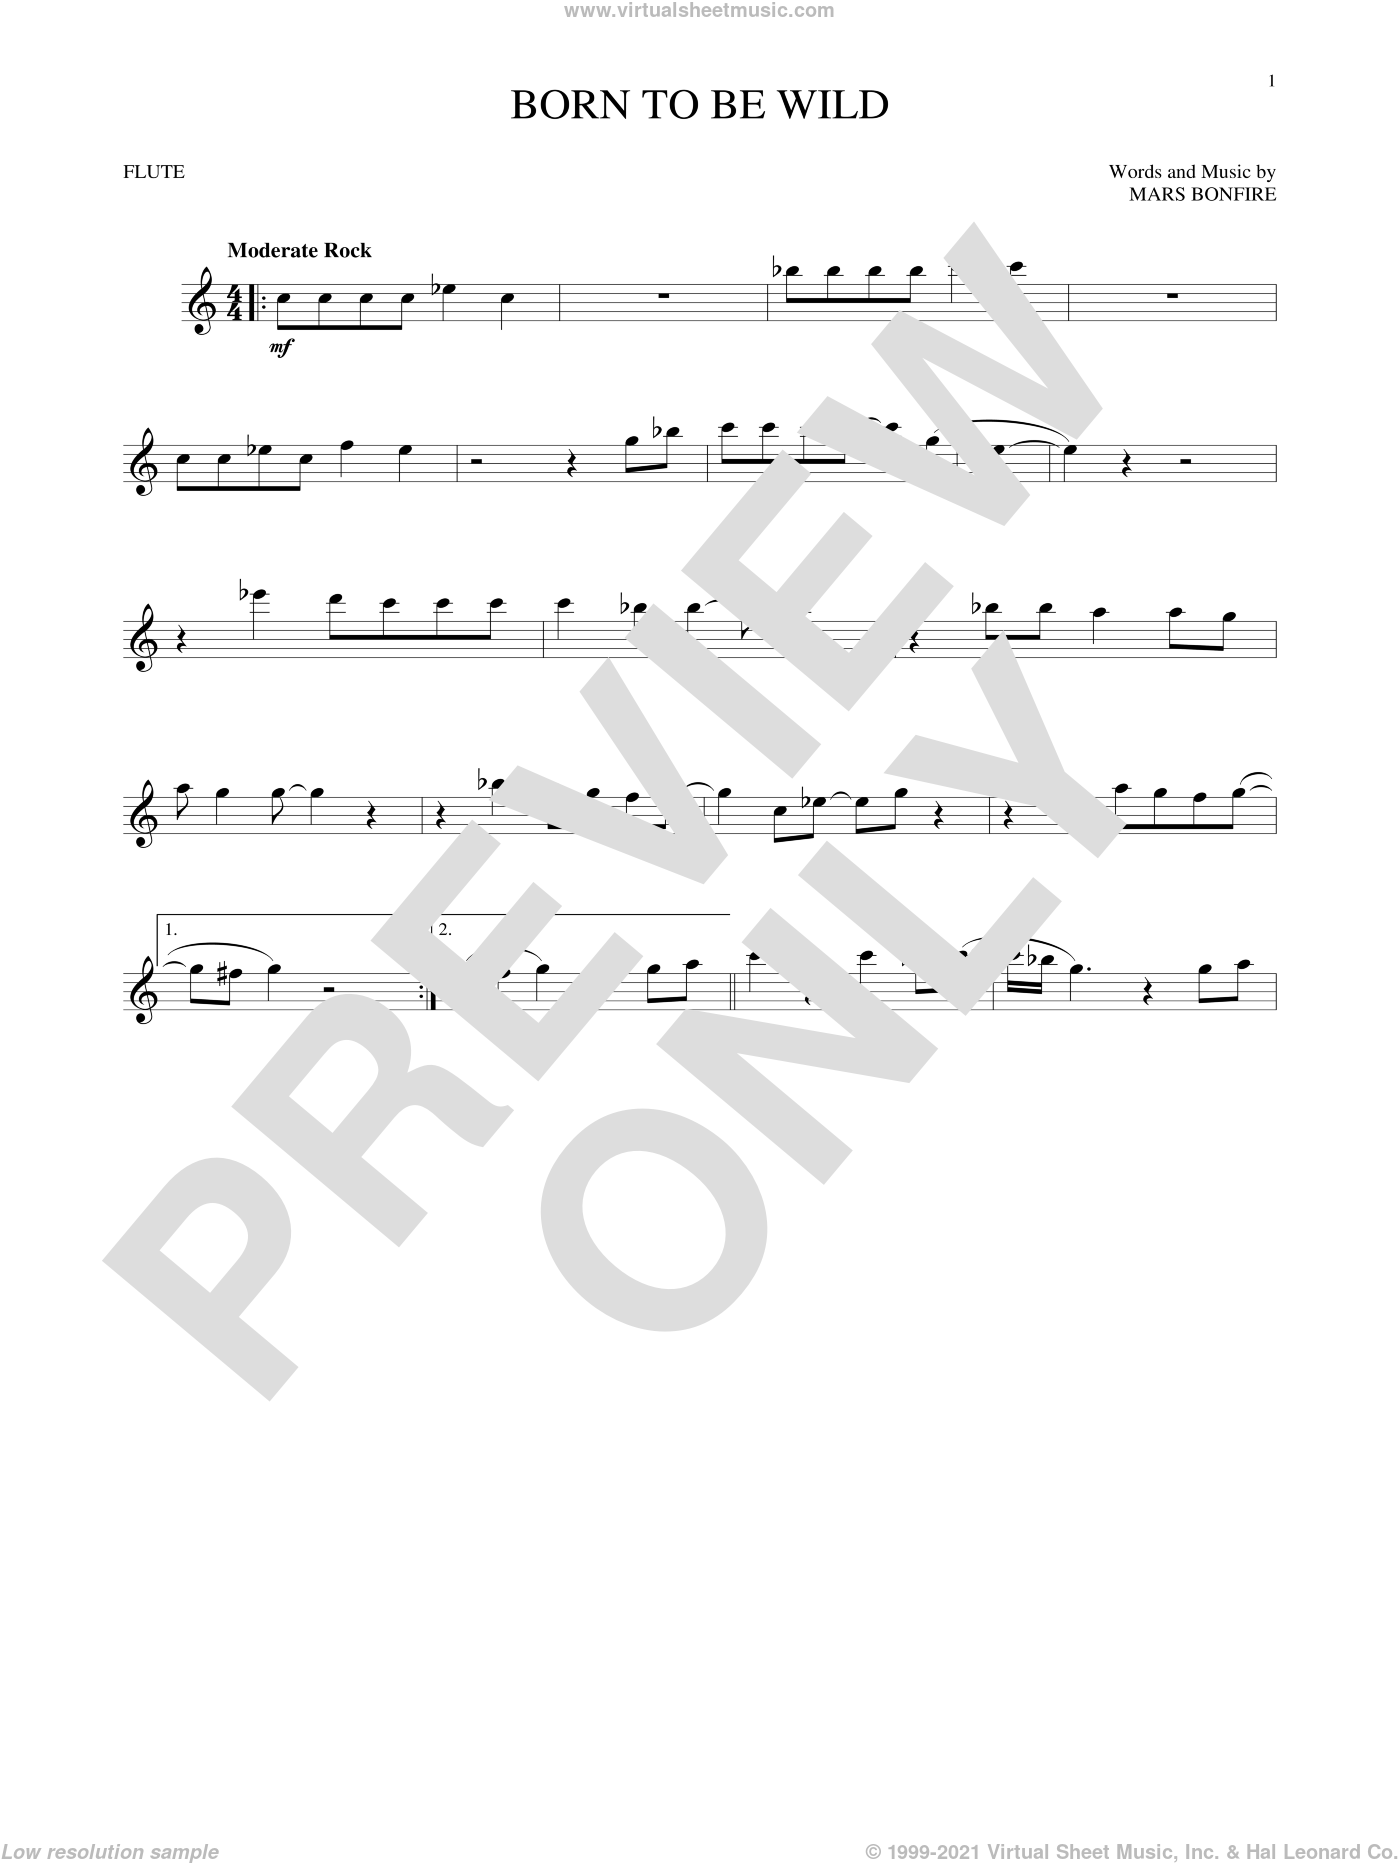 Born To Be Wild sheet music for flute solo by Steppenwolf and Mars Bonfire, intermediate skill level